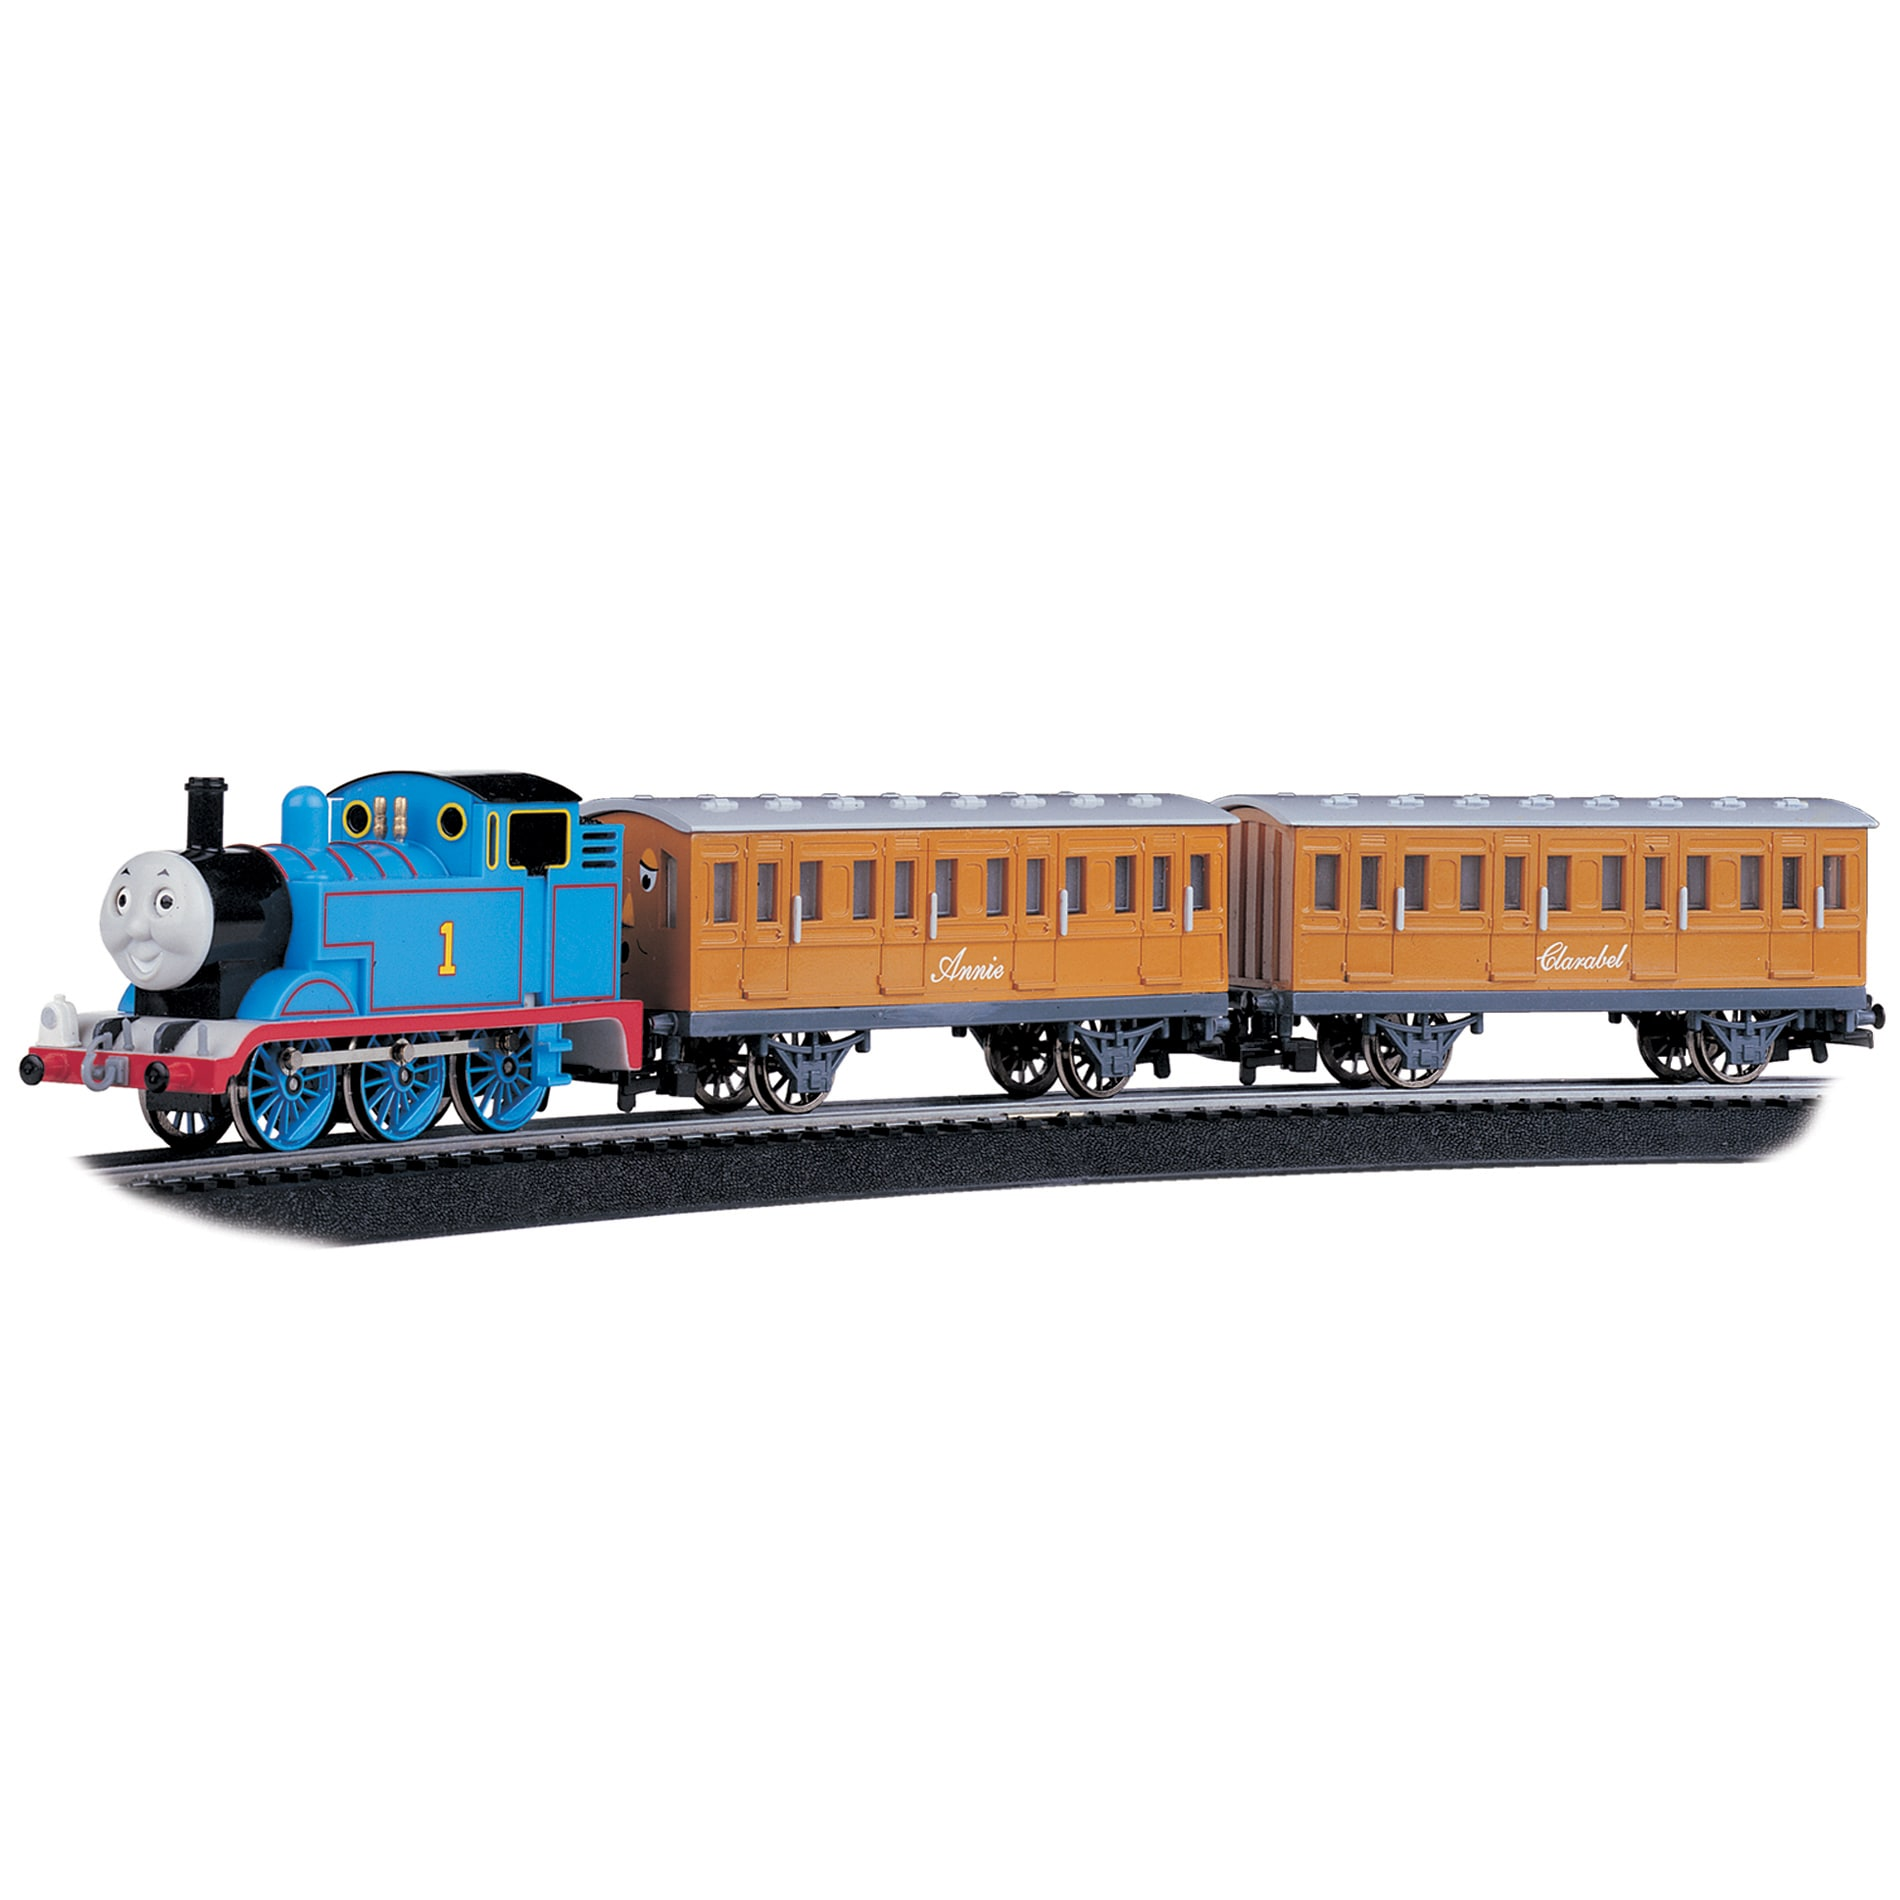 Friends ho scale bachmann thomas passenger car train car pictures